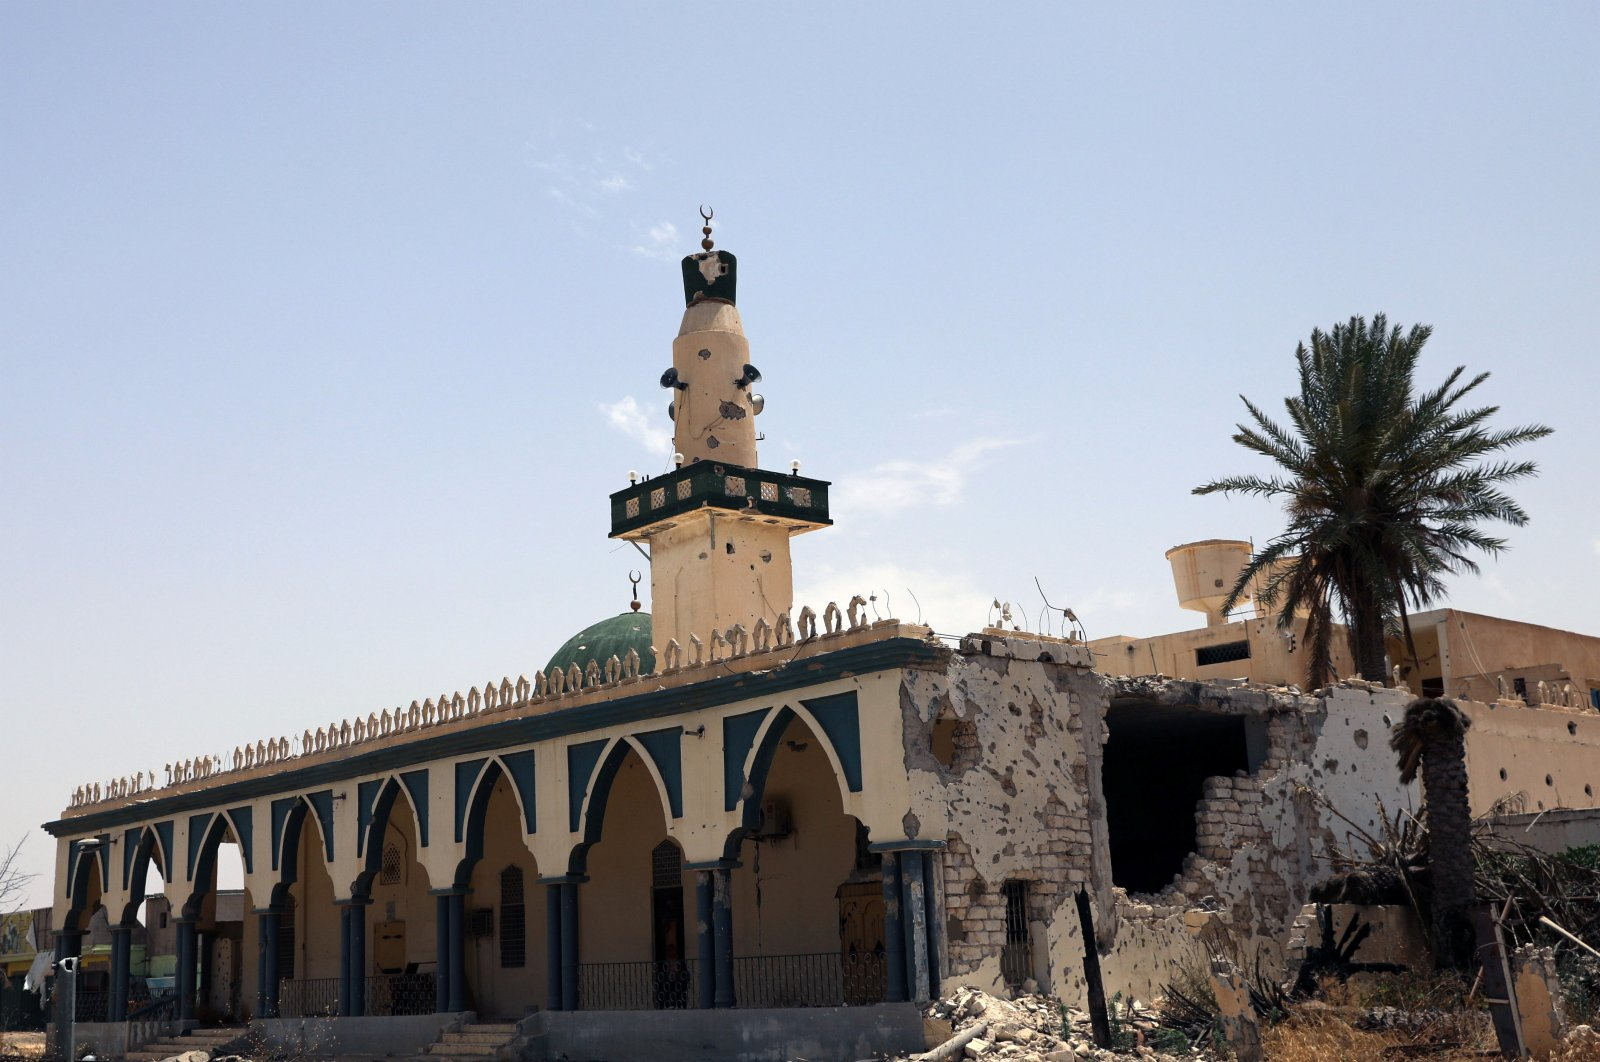 A damaged mosque is seen after Libyan's internationally recognised government regained control over the city, in Tripoli, Libya, June 4, 2020. (REUTERS)